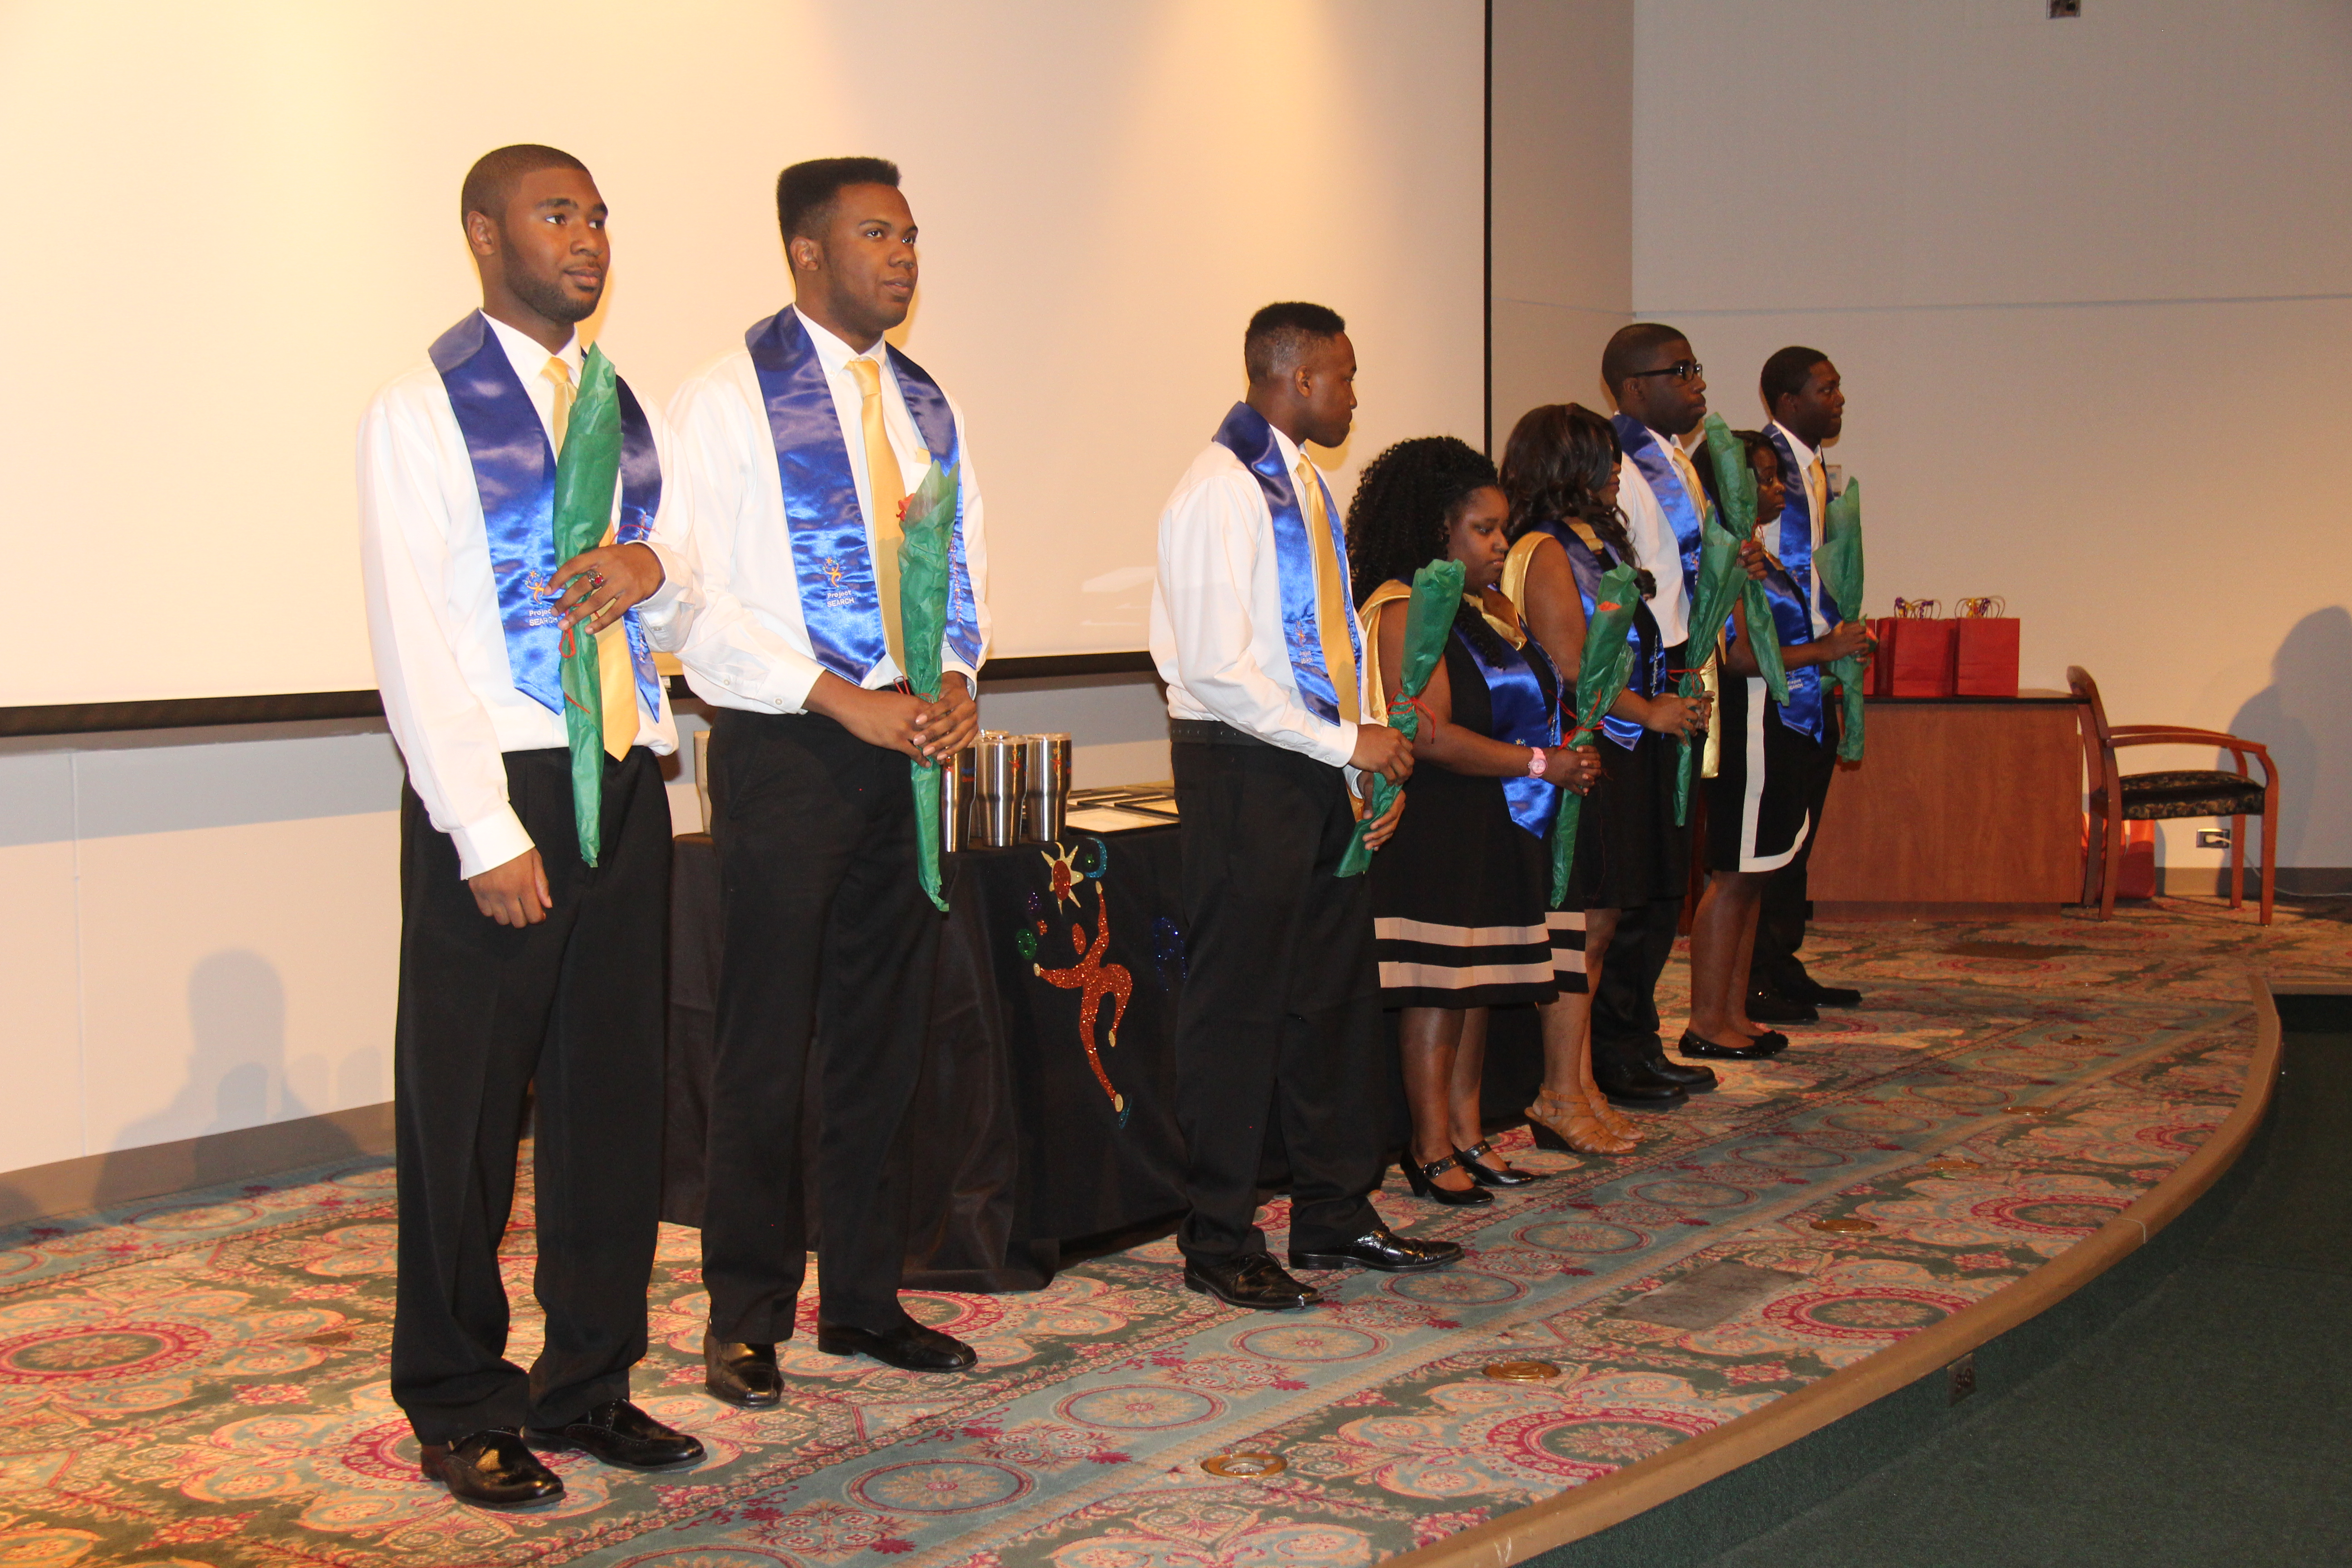 Project SEARCH graduates from the UAB site stand on stage